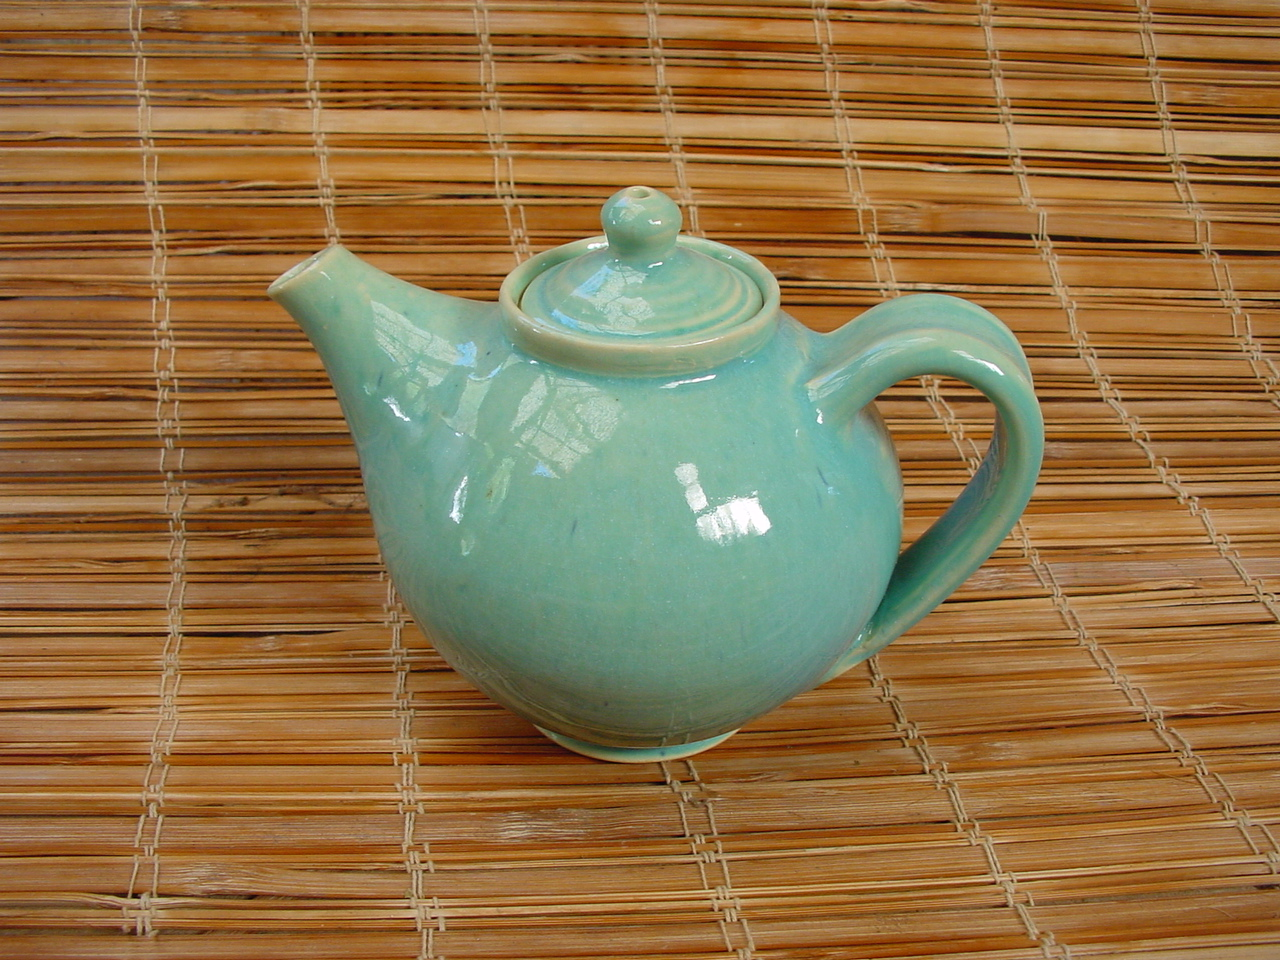 Freeflow Handmade Pottery Original Teapots For Sale From